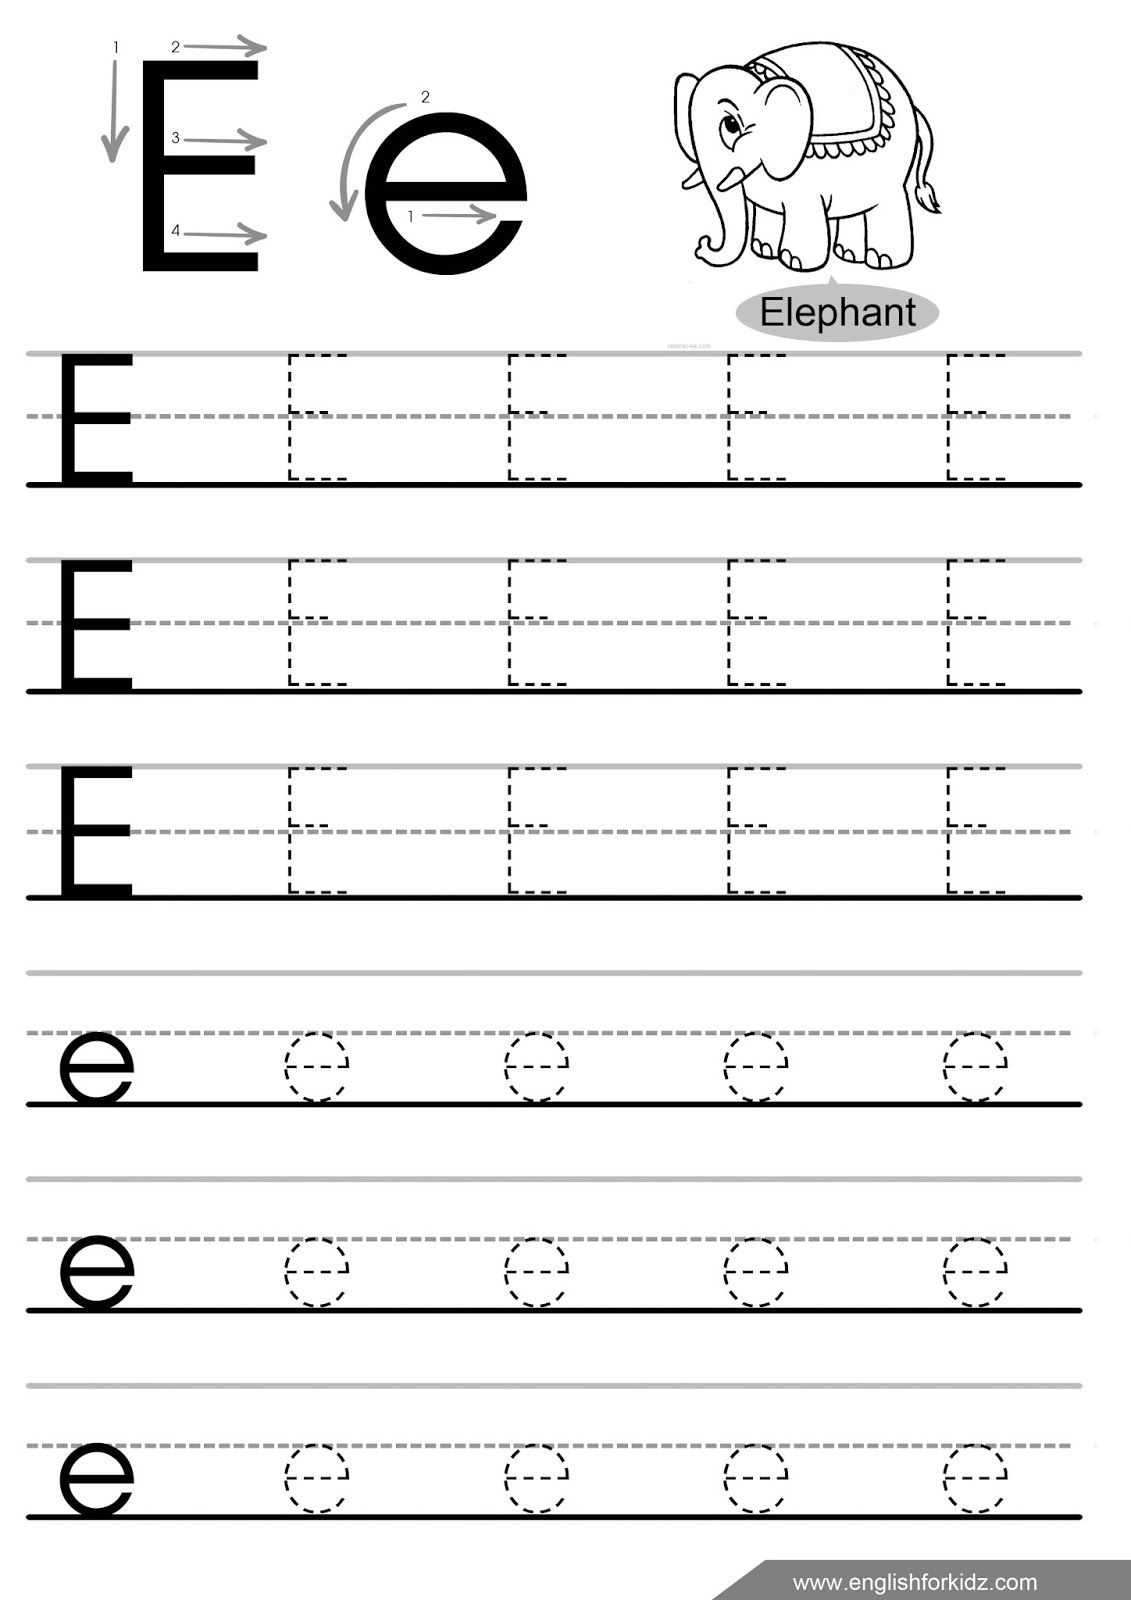 Letter Tracing Worksheets Letters A J | Tracing Worksheets intended for E Letter Tracing Worksheet